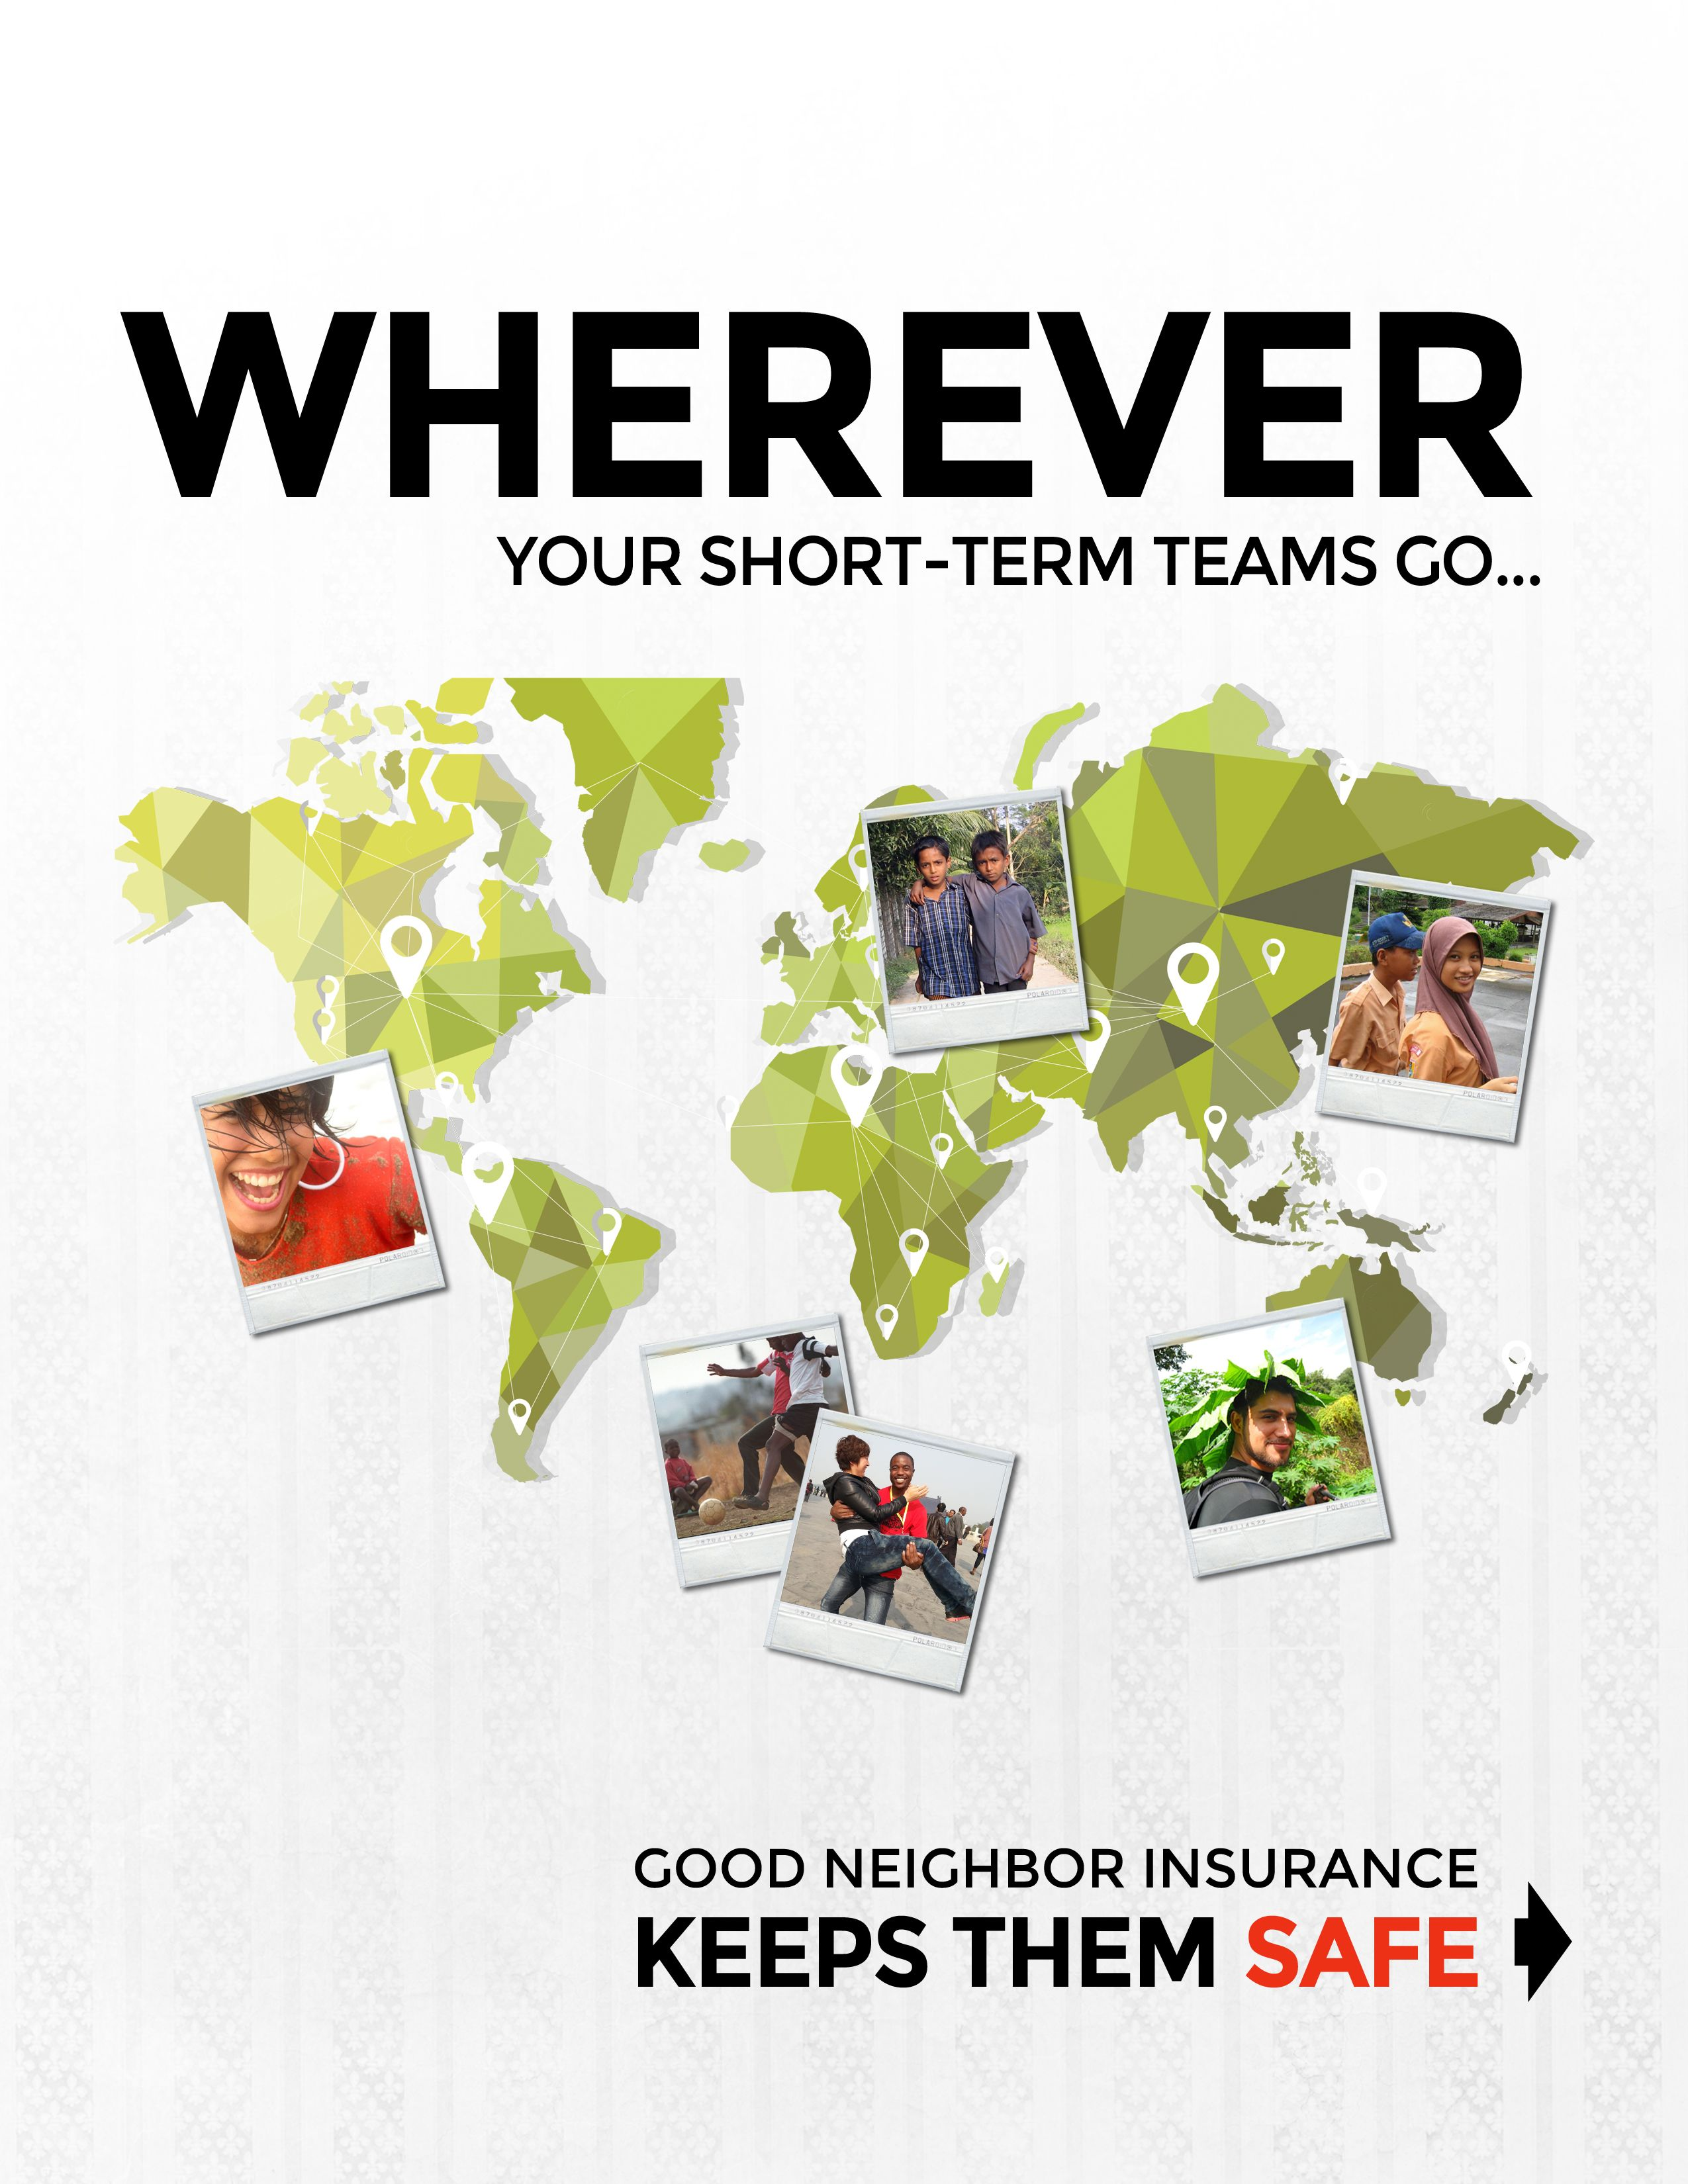 Group Travel Insurance (With images) | Volunteer projects ...